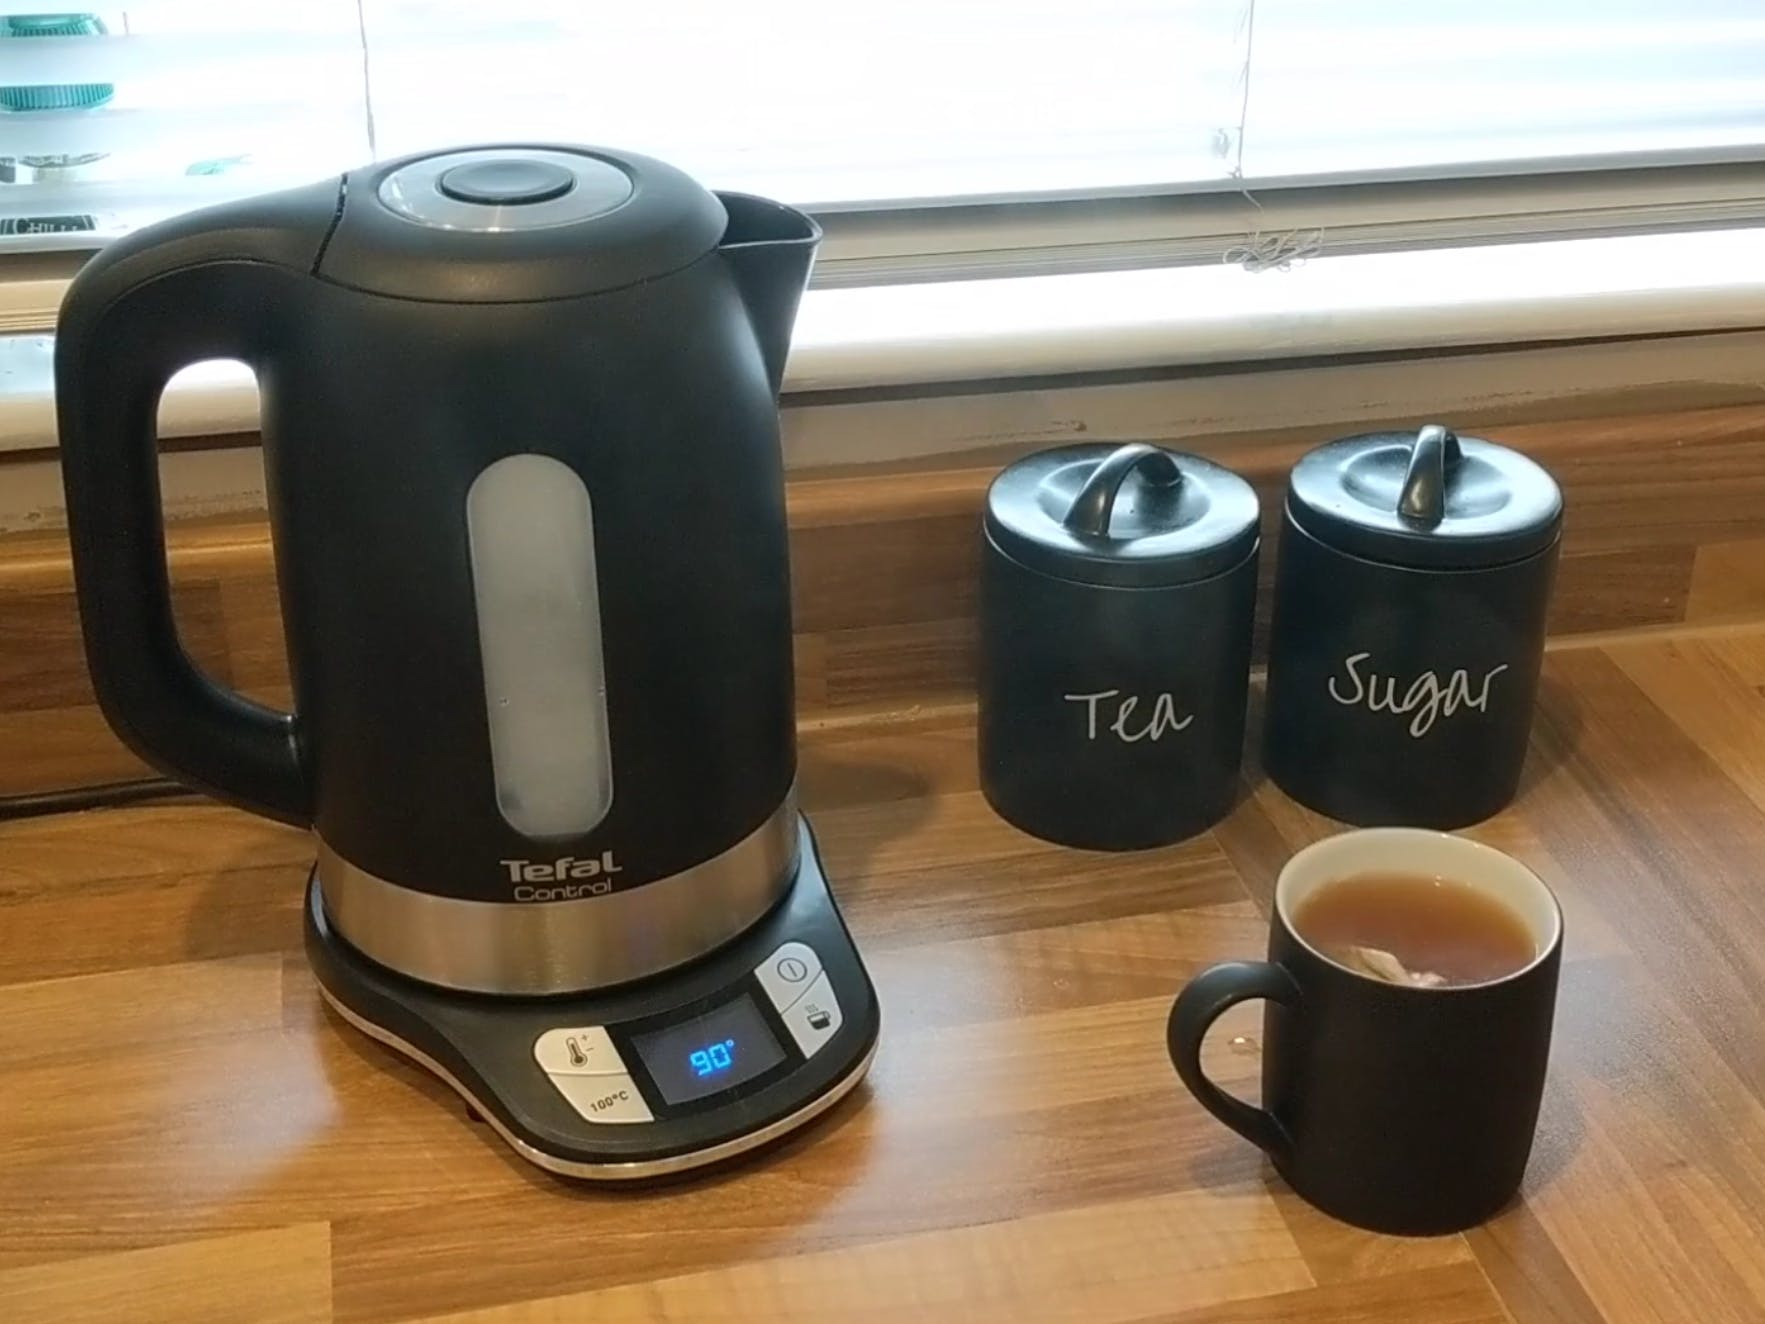 Alexa, Put the Kettle On!